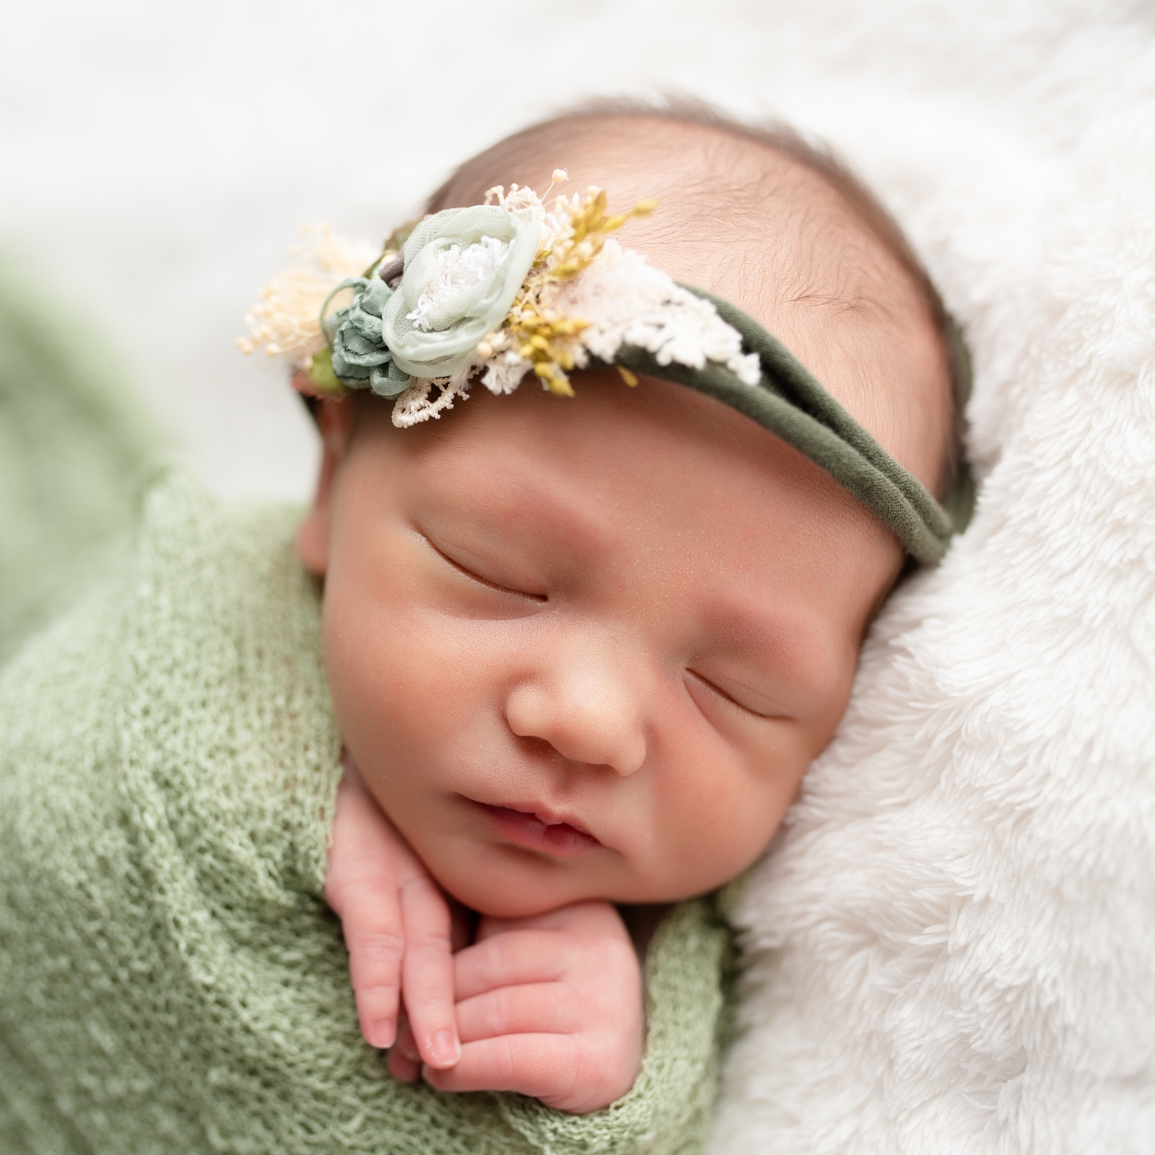 somerville-newborn-family-photography-2.jpg